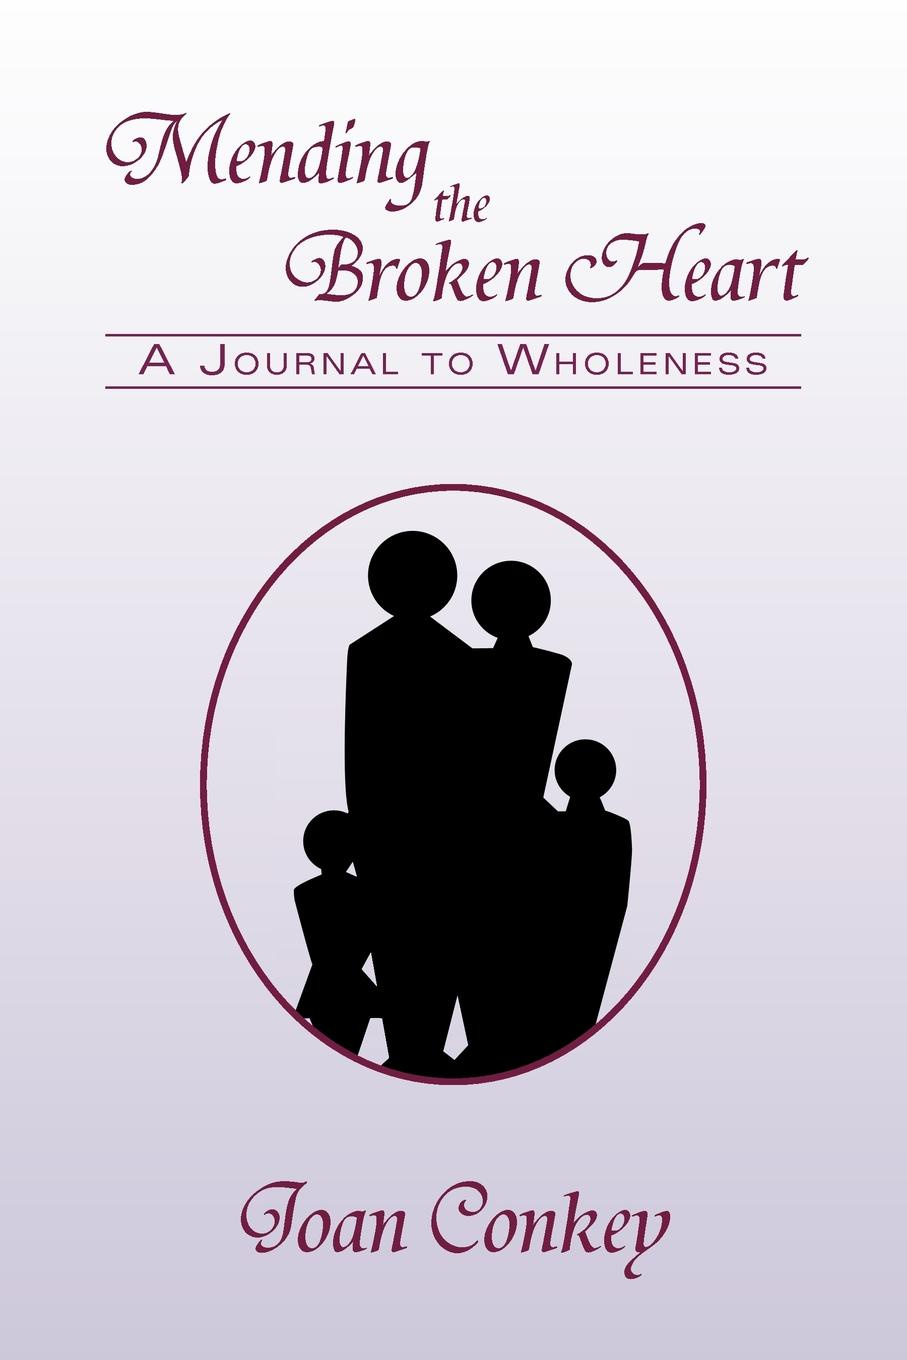 лучшая цена Joan Conkey Mending the Broken Heart. A Journal to Wholeness